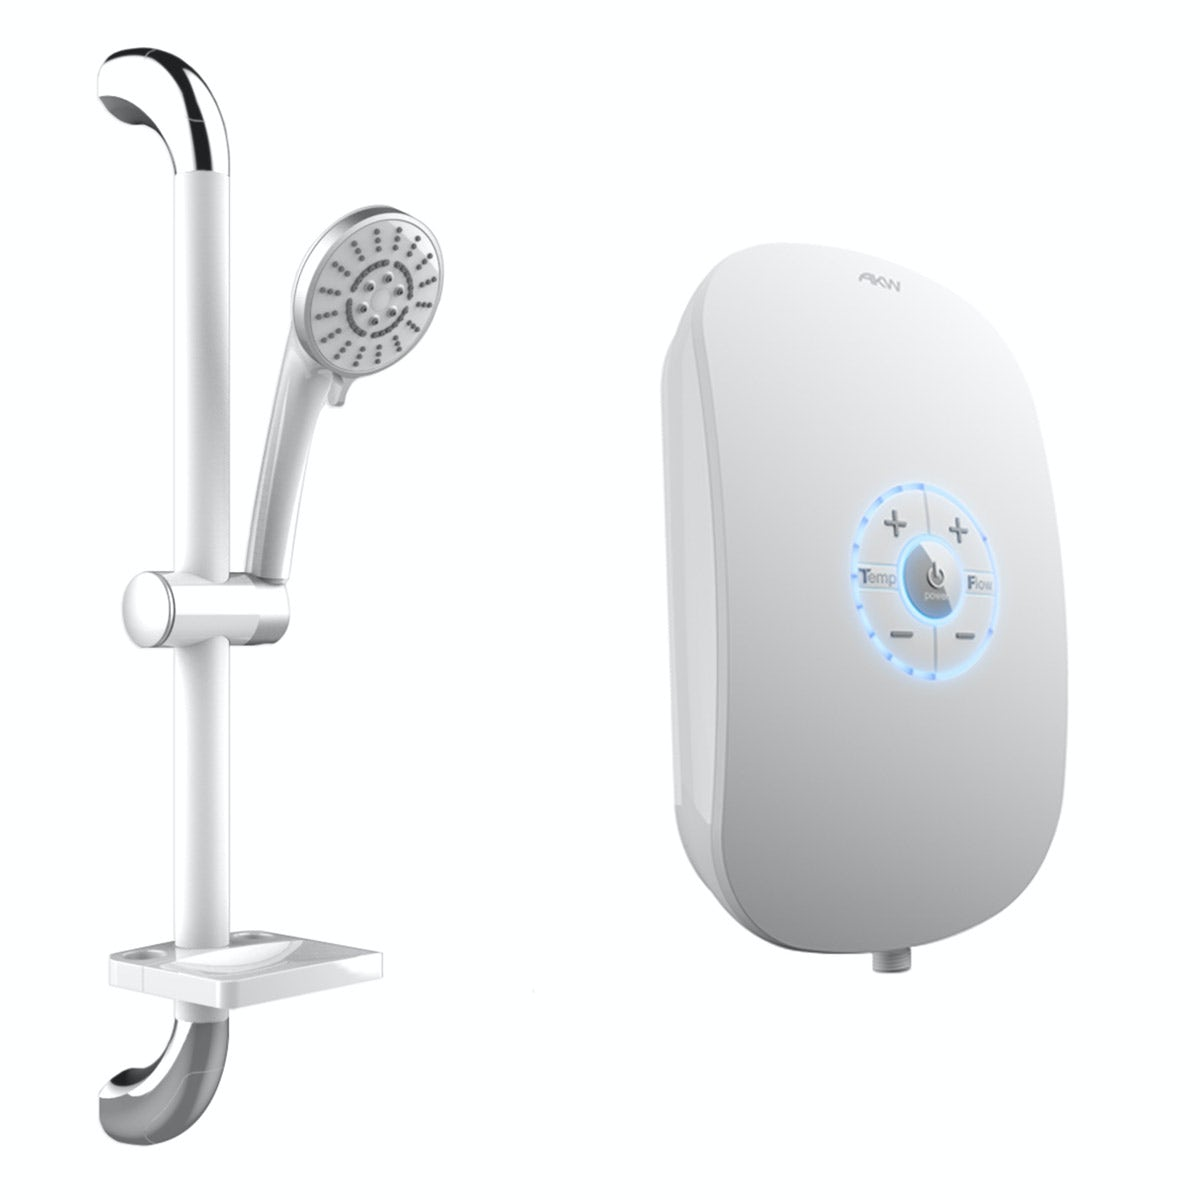 AKW iCare electric shower white